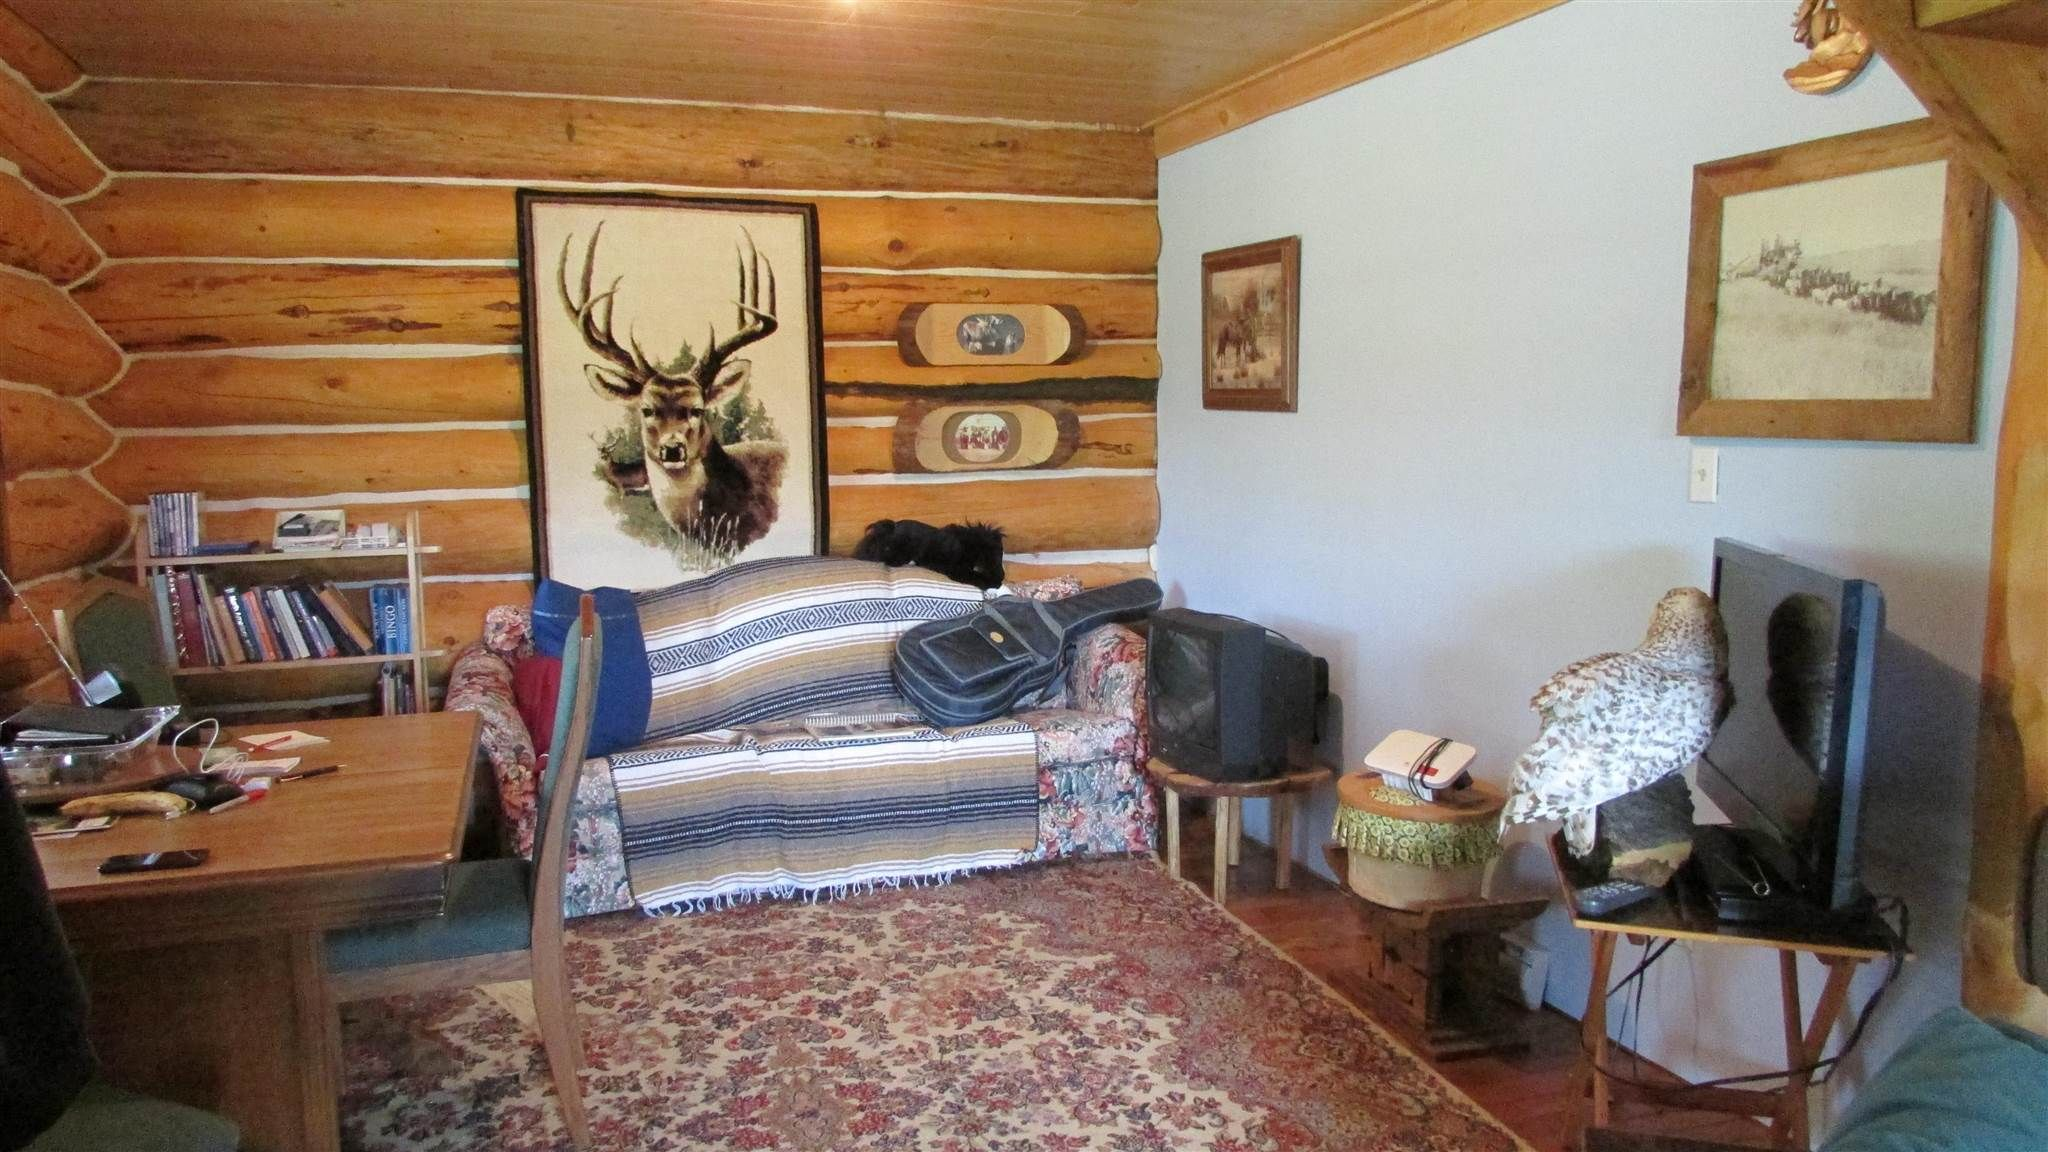 """Photo 18: Photos: 4663 RESCHKE Road: Hudsons Hope House for sale in """"LYNX CREEK SUBDIVISION"""" (Fort St. John (Zone 60))  : MLS®# R2594975"""